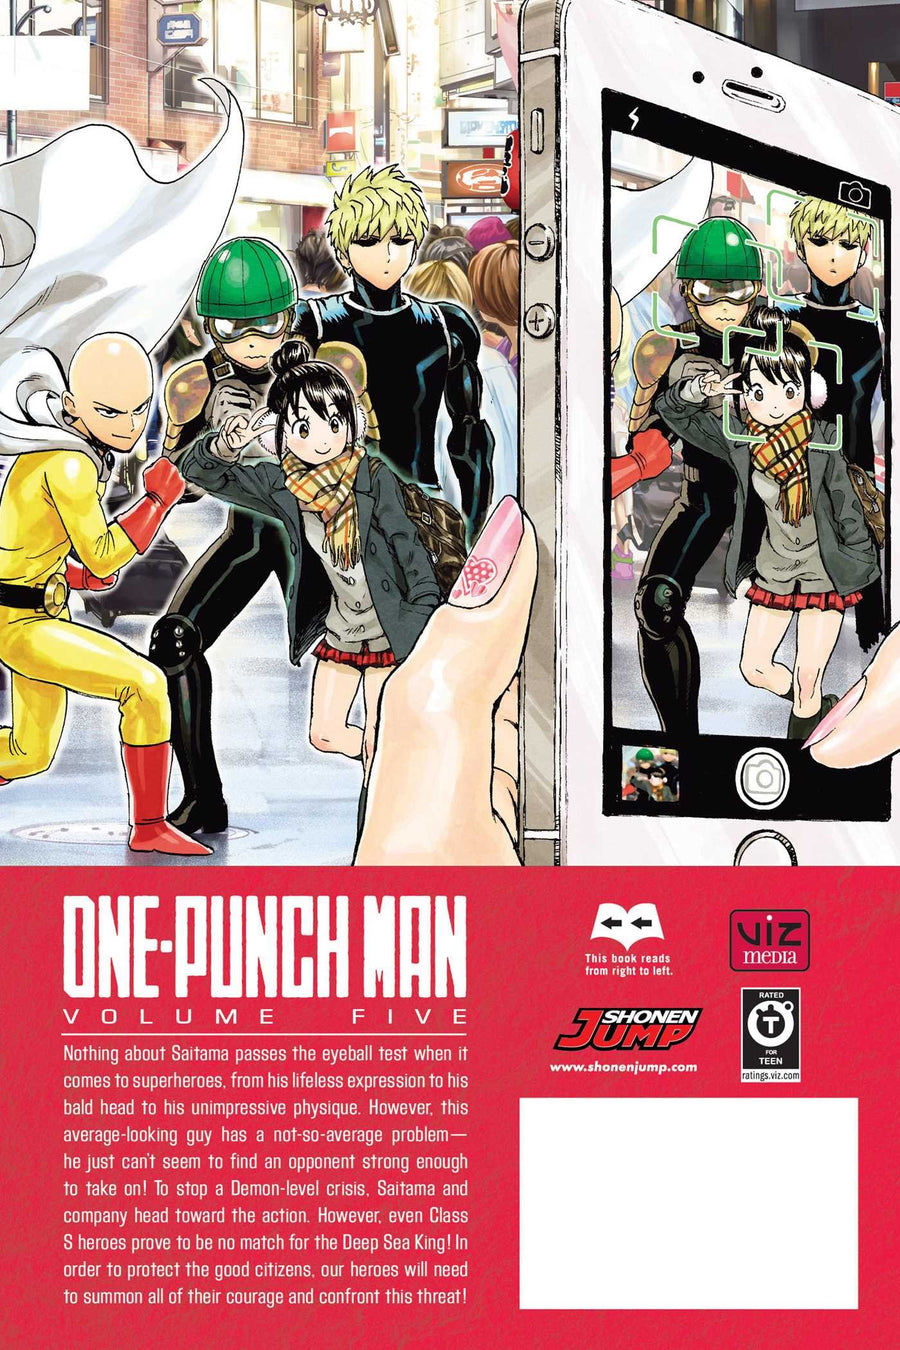 One Punch Man Volume 5